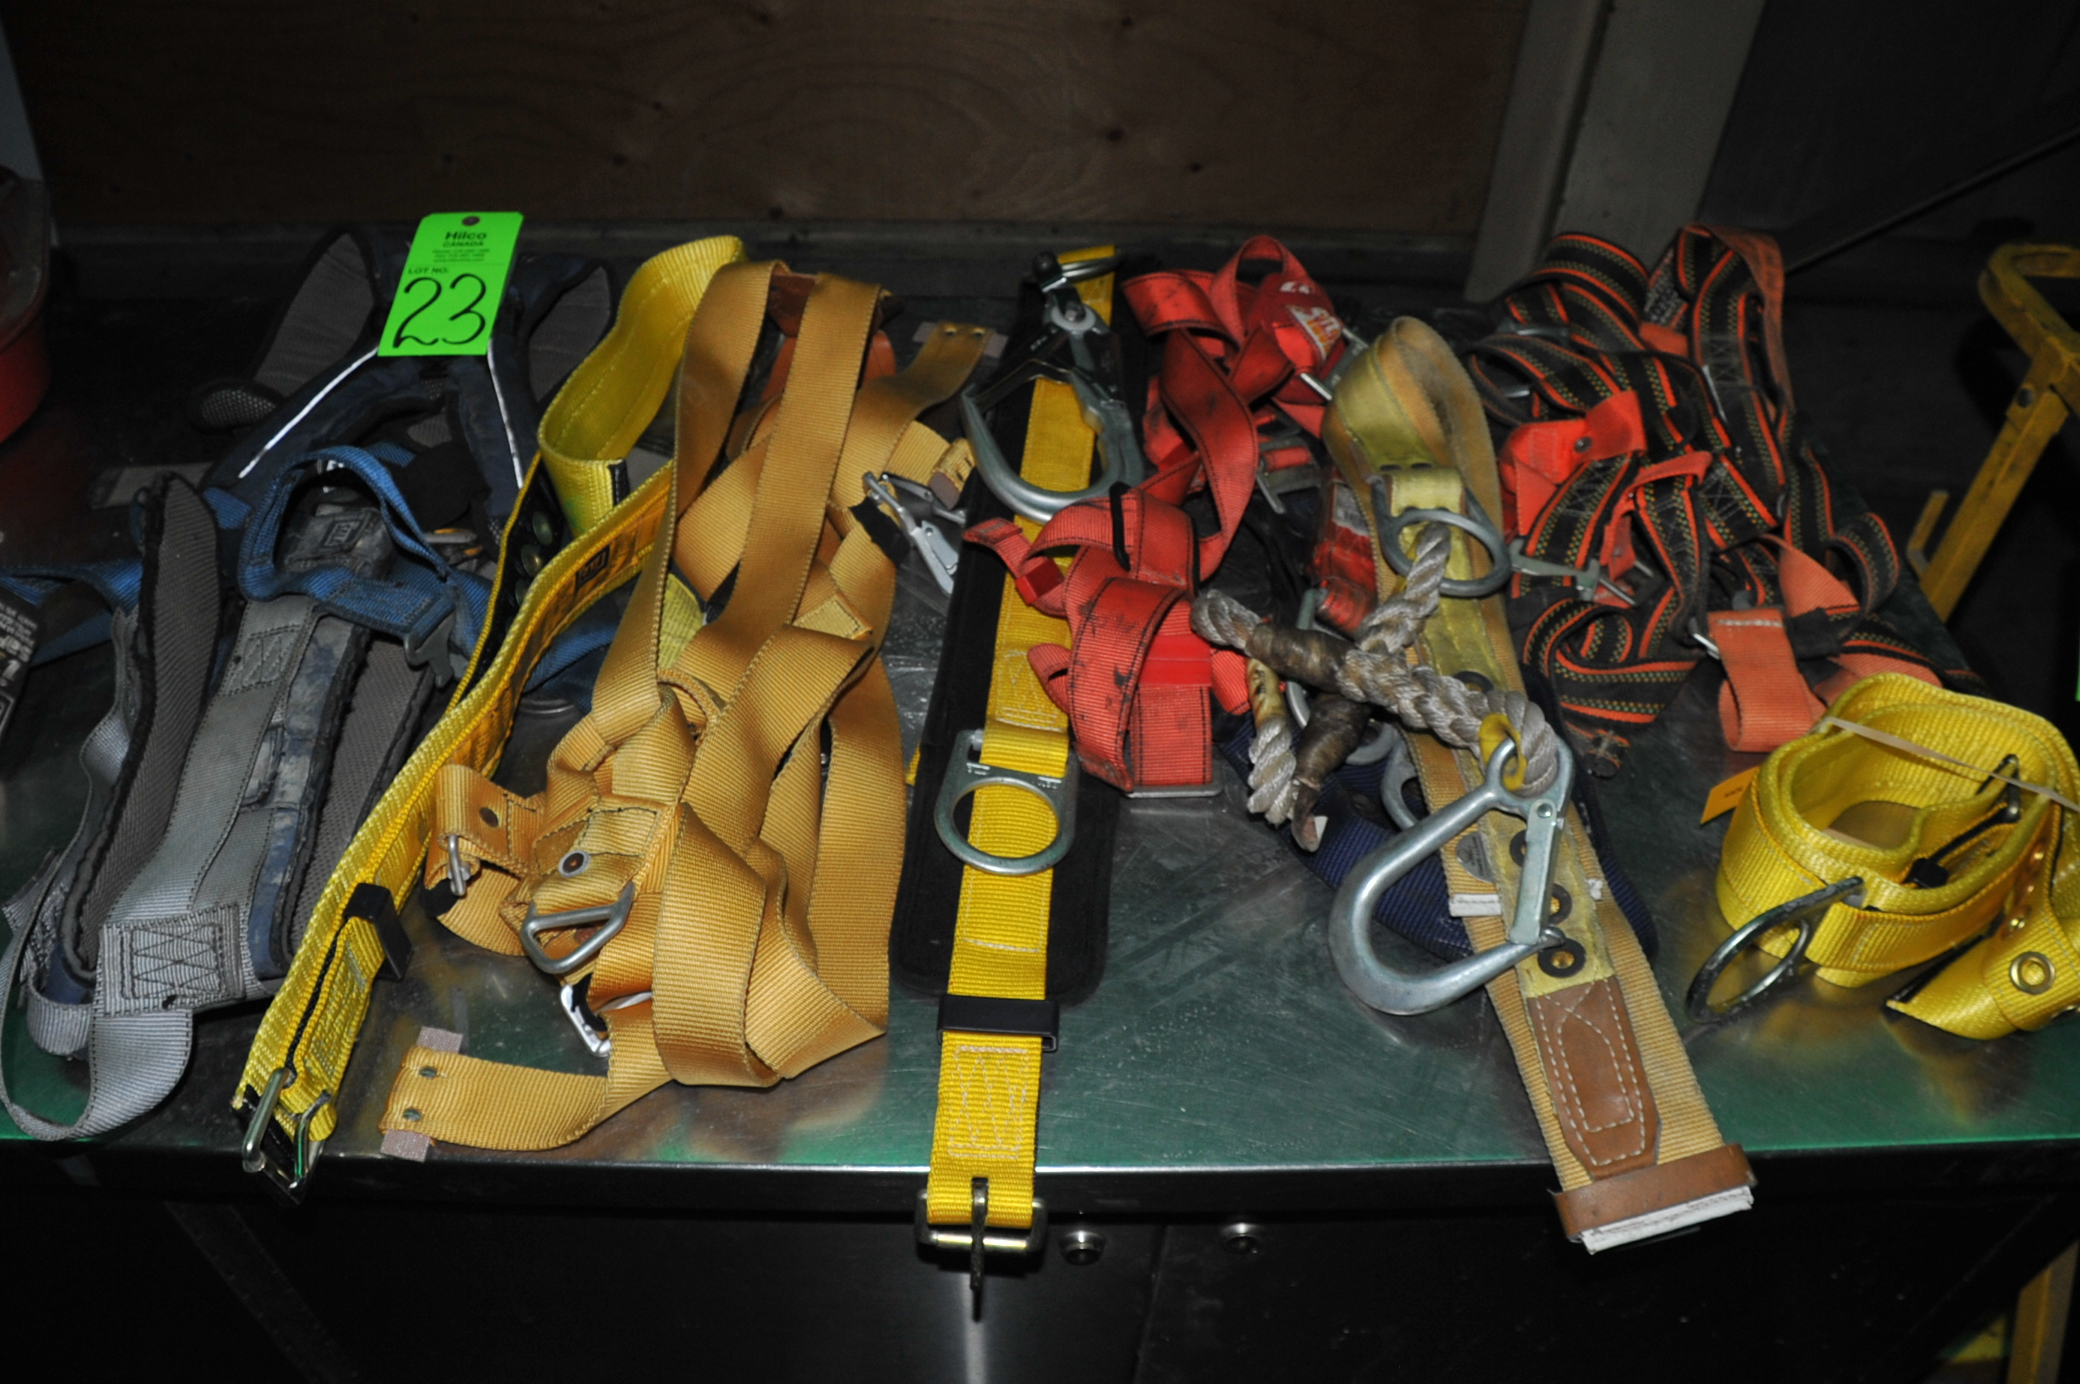 Lot 23 - Lot of Asst. Sala, Protecta Safety Harnesses